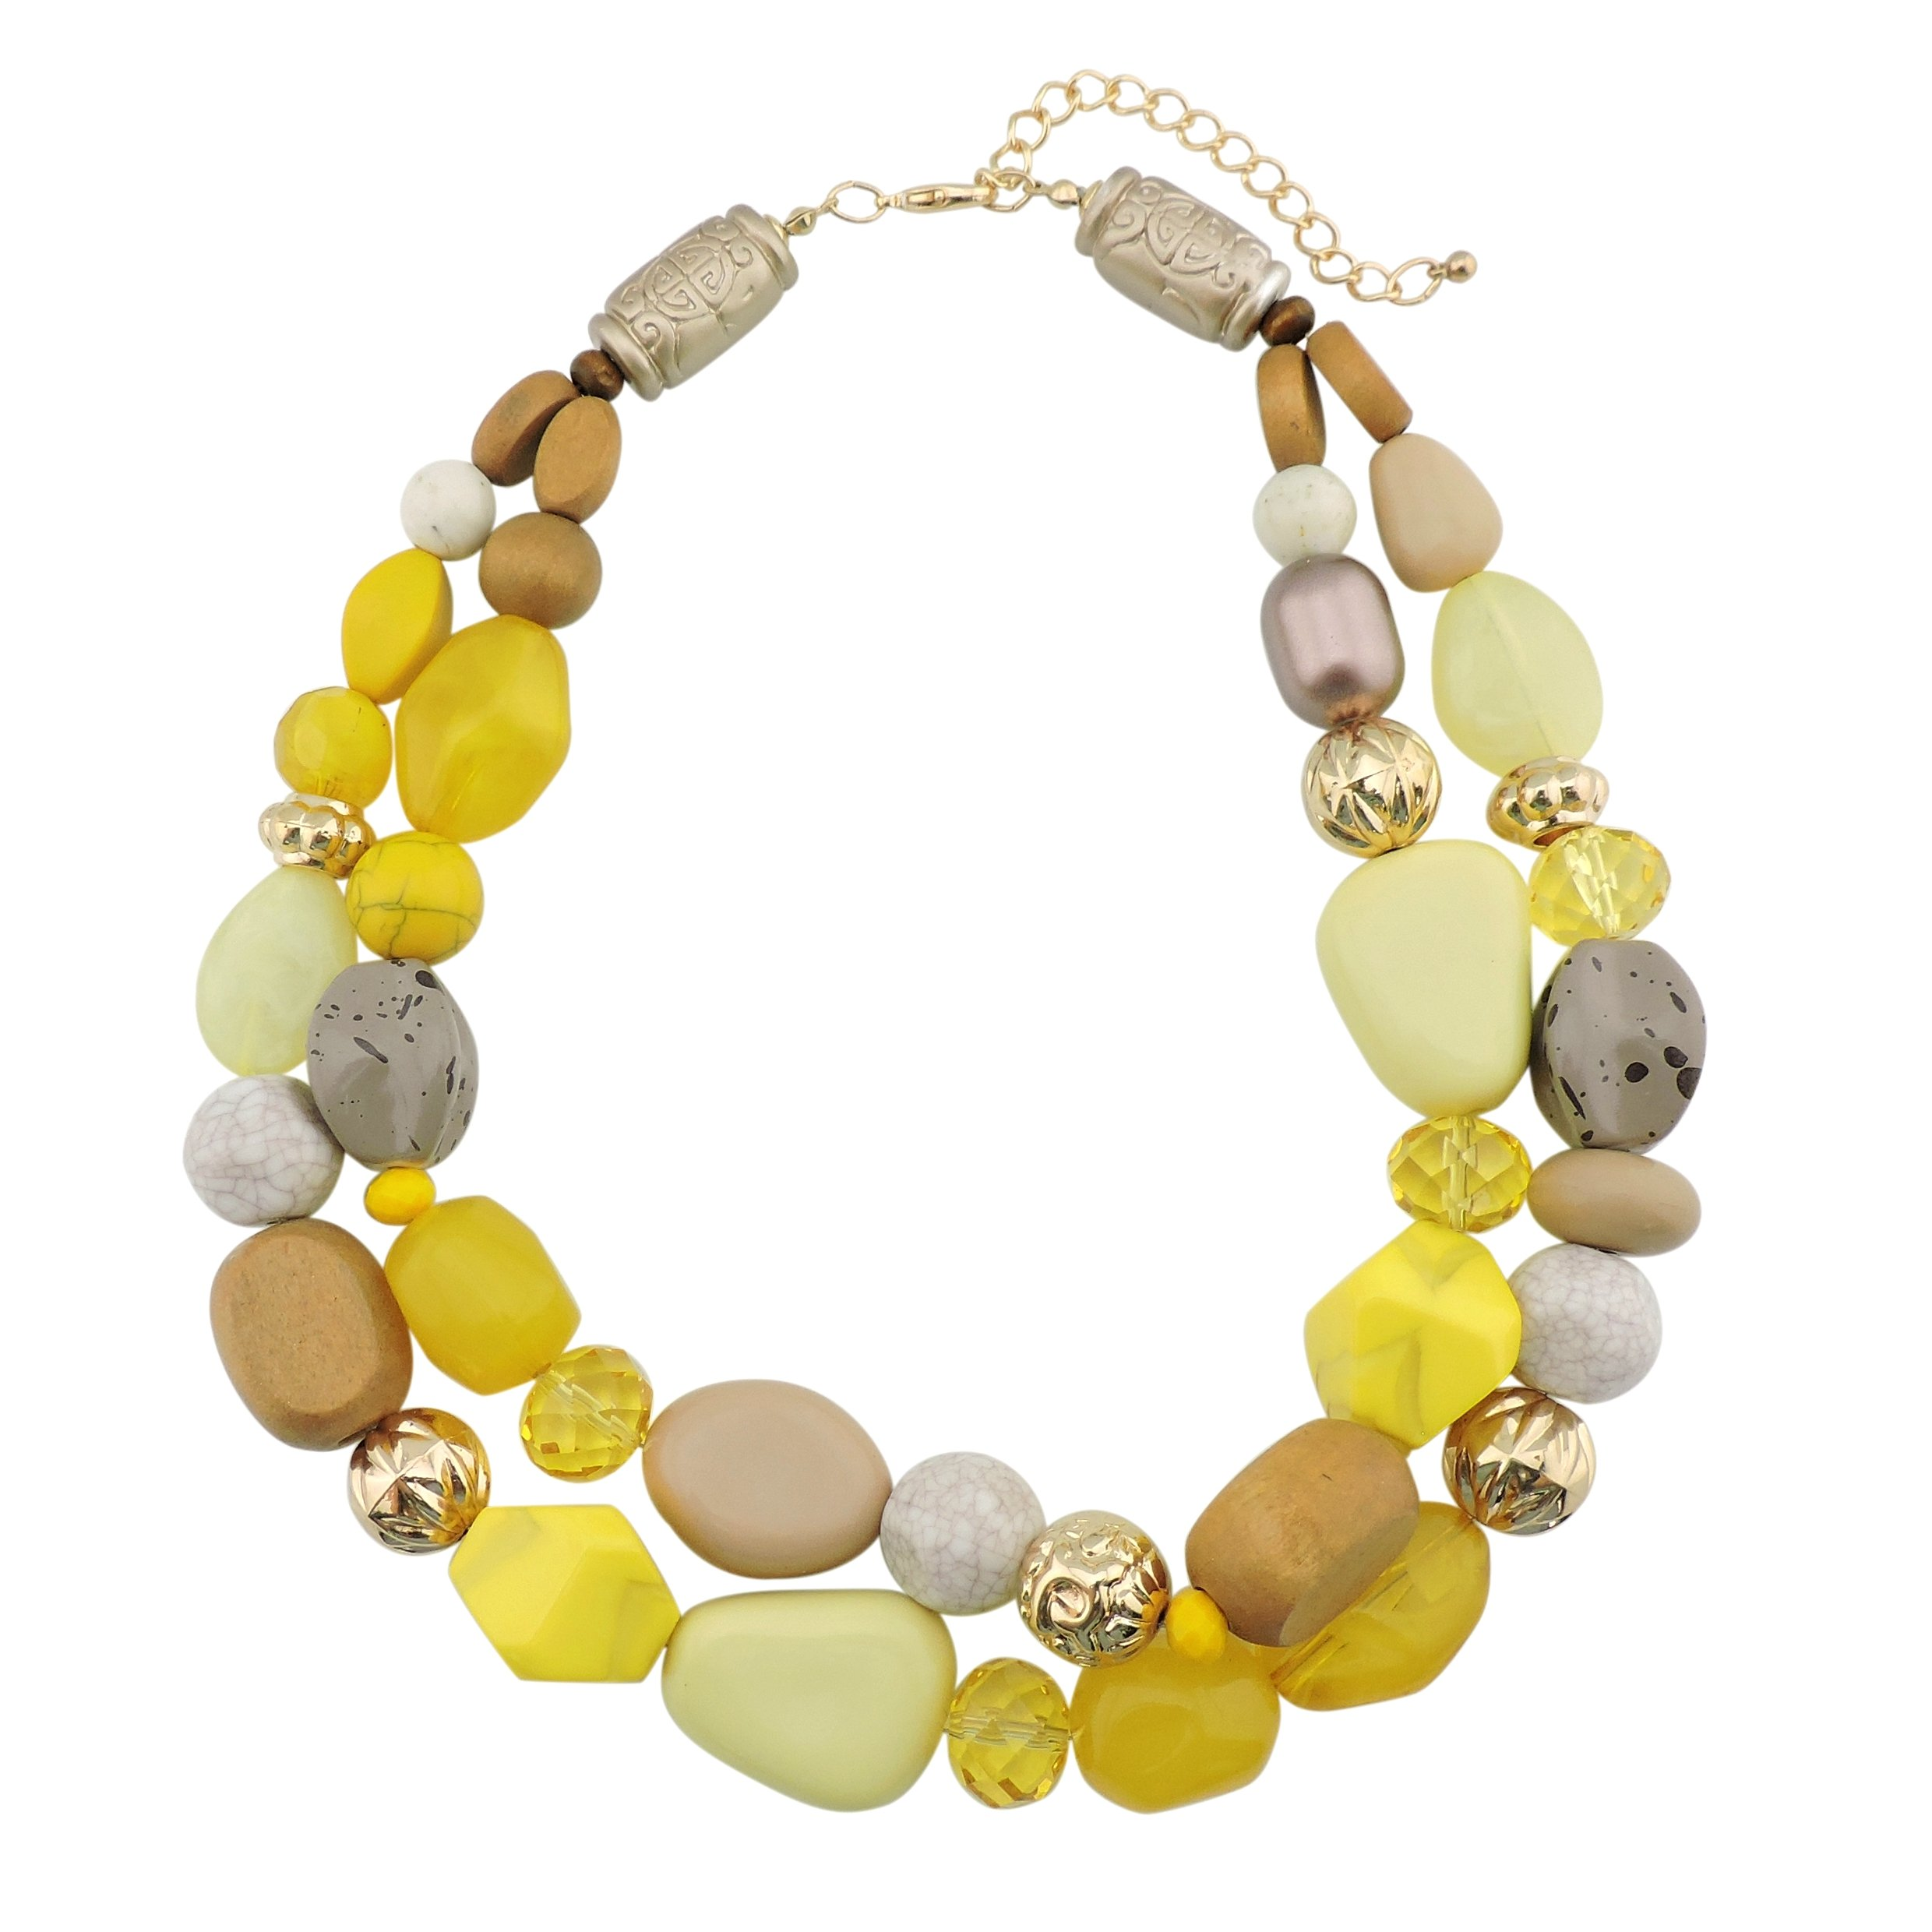 Bocar 2 Layer Statement Chunky Beaded Fashion Necklace for Women Gifts (NK-10384-yellow)